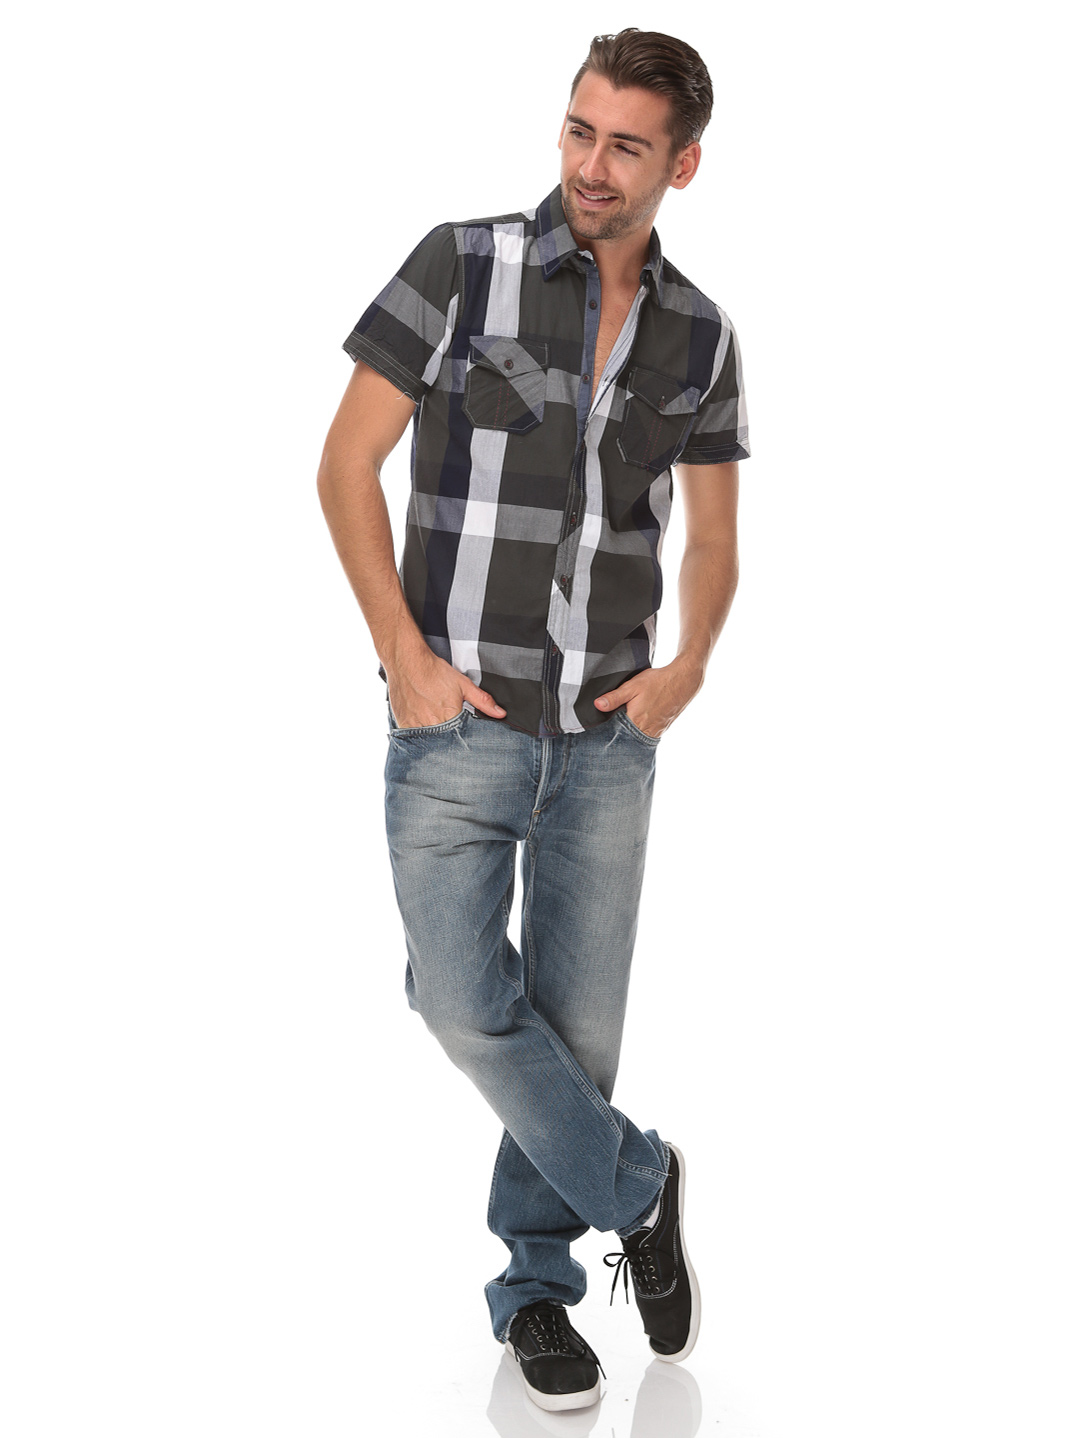 Casual Jeans Outfits Men Jeans For Men as Casual